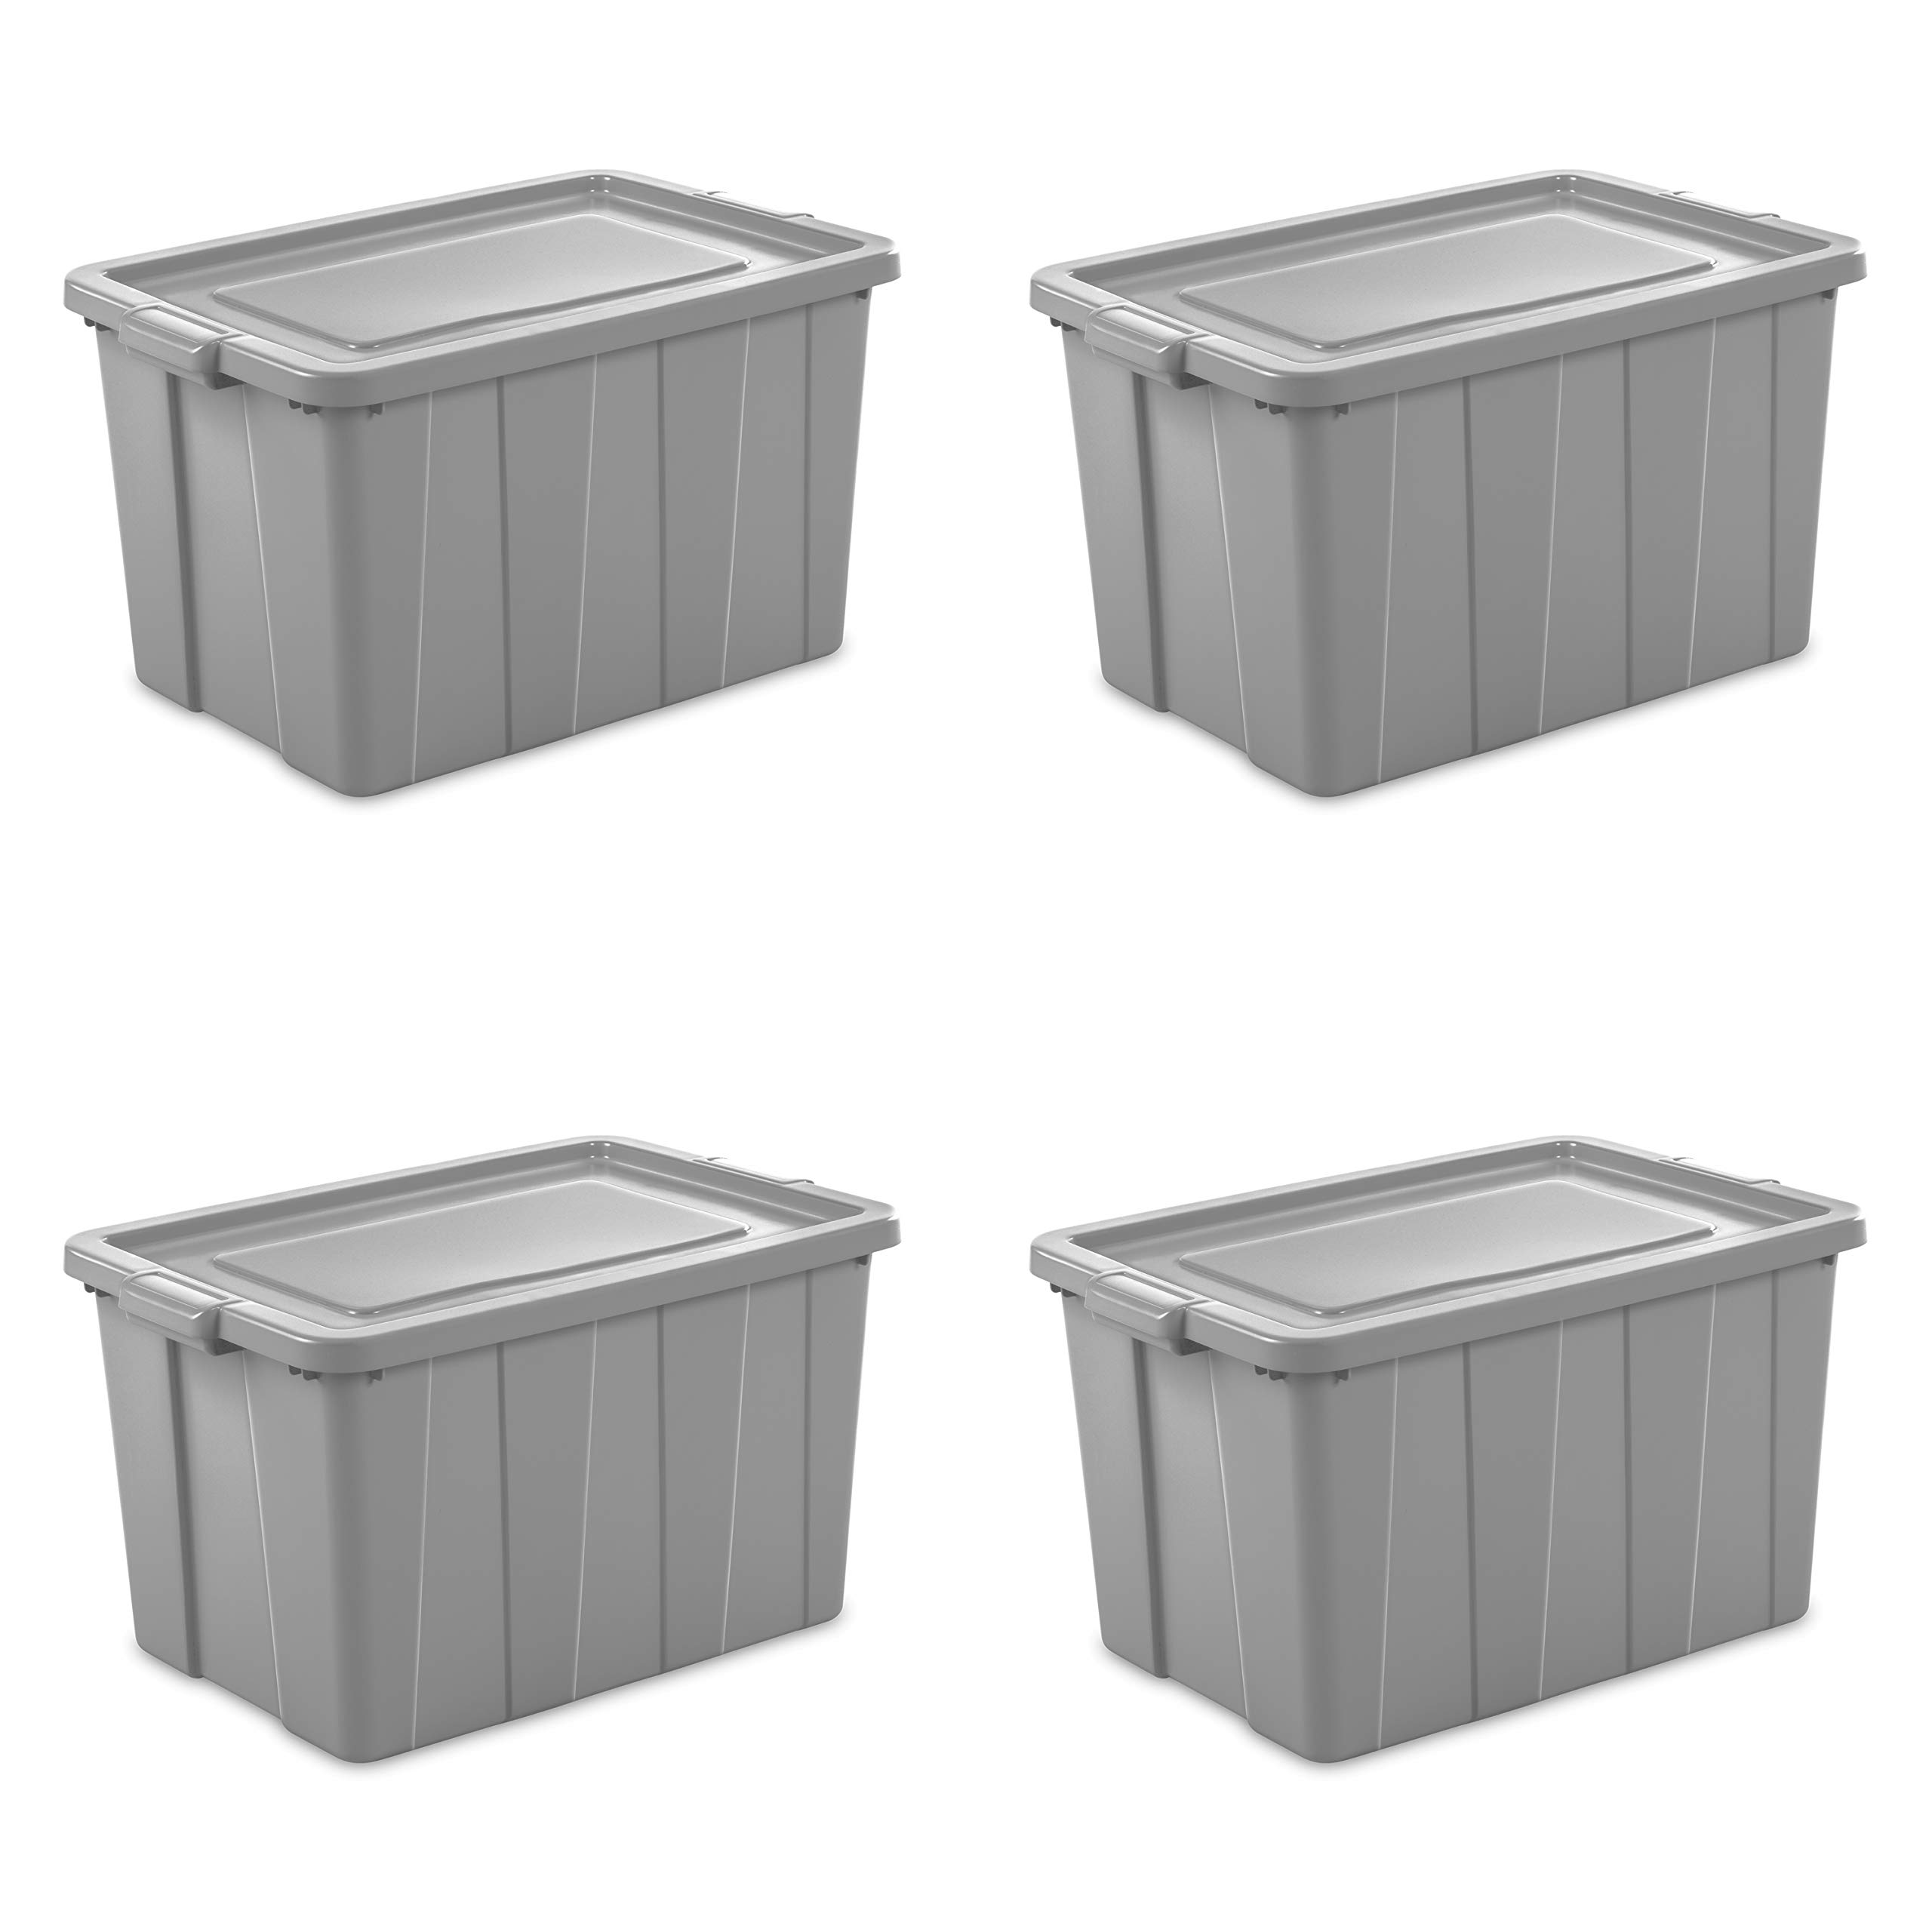 Sterilite 16796A04 Storage Tote, 30 gallon, Cement Lid and Base (Pack of 4) by STERILITE